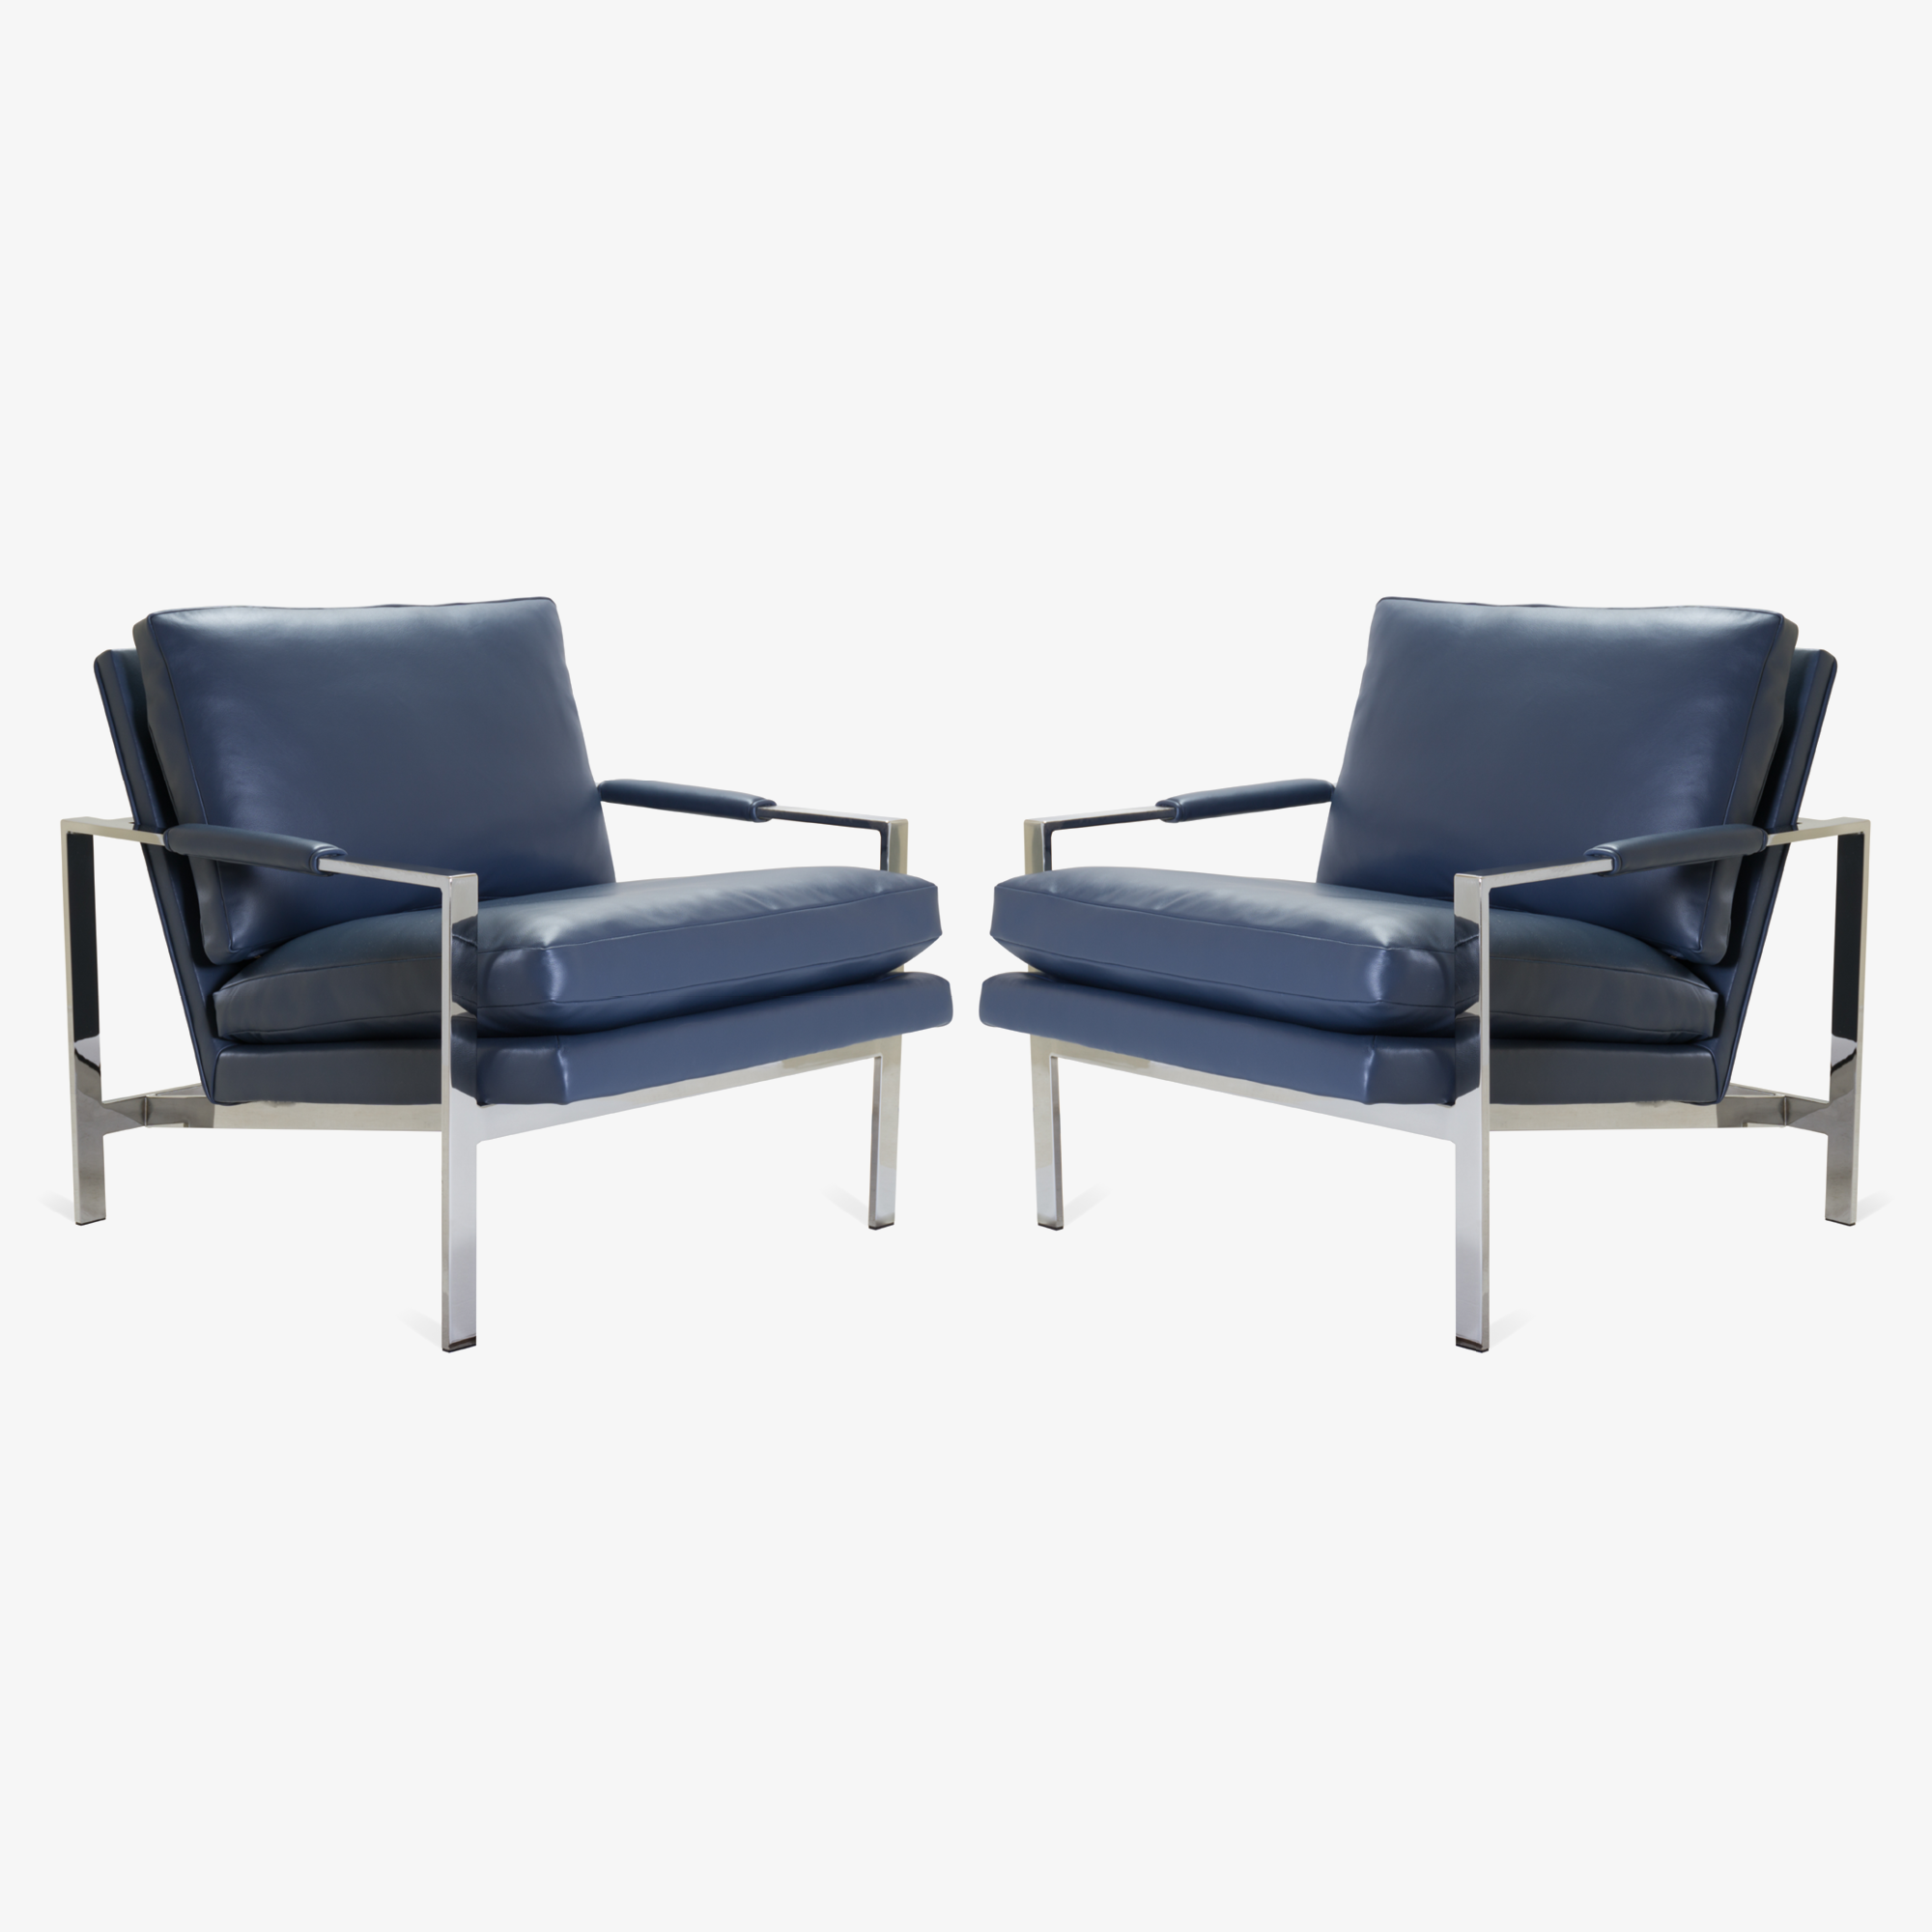 Flat-Bar Club Chairs in Navy Leather by Milo Baughman for Thayer Coggin.png